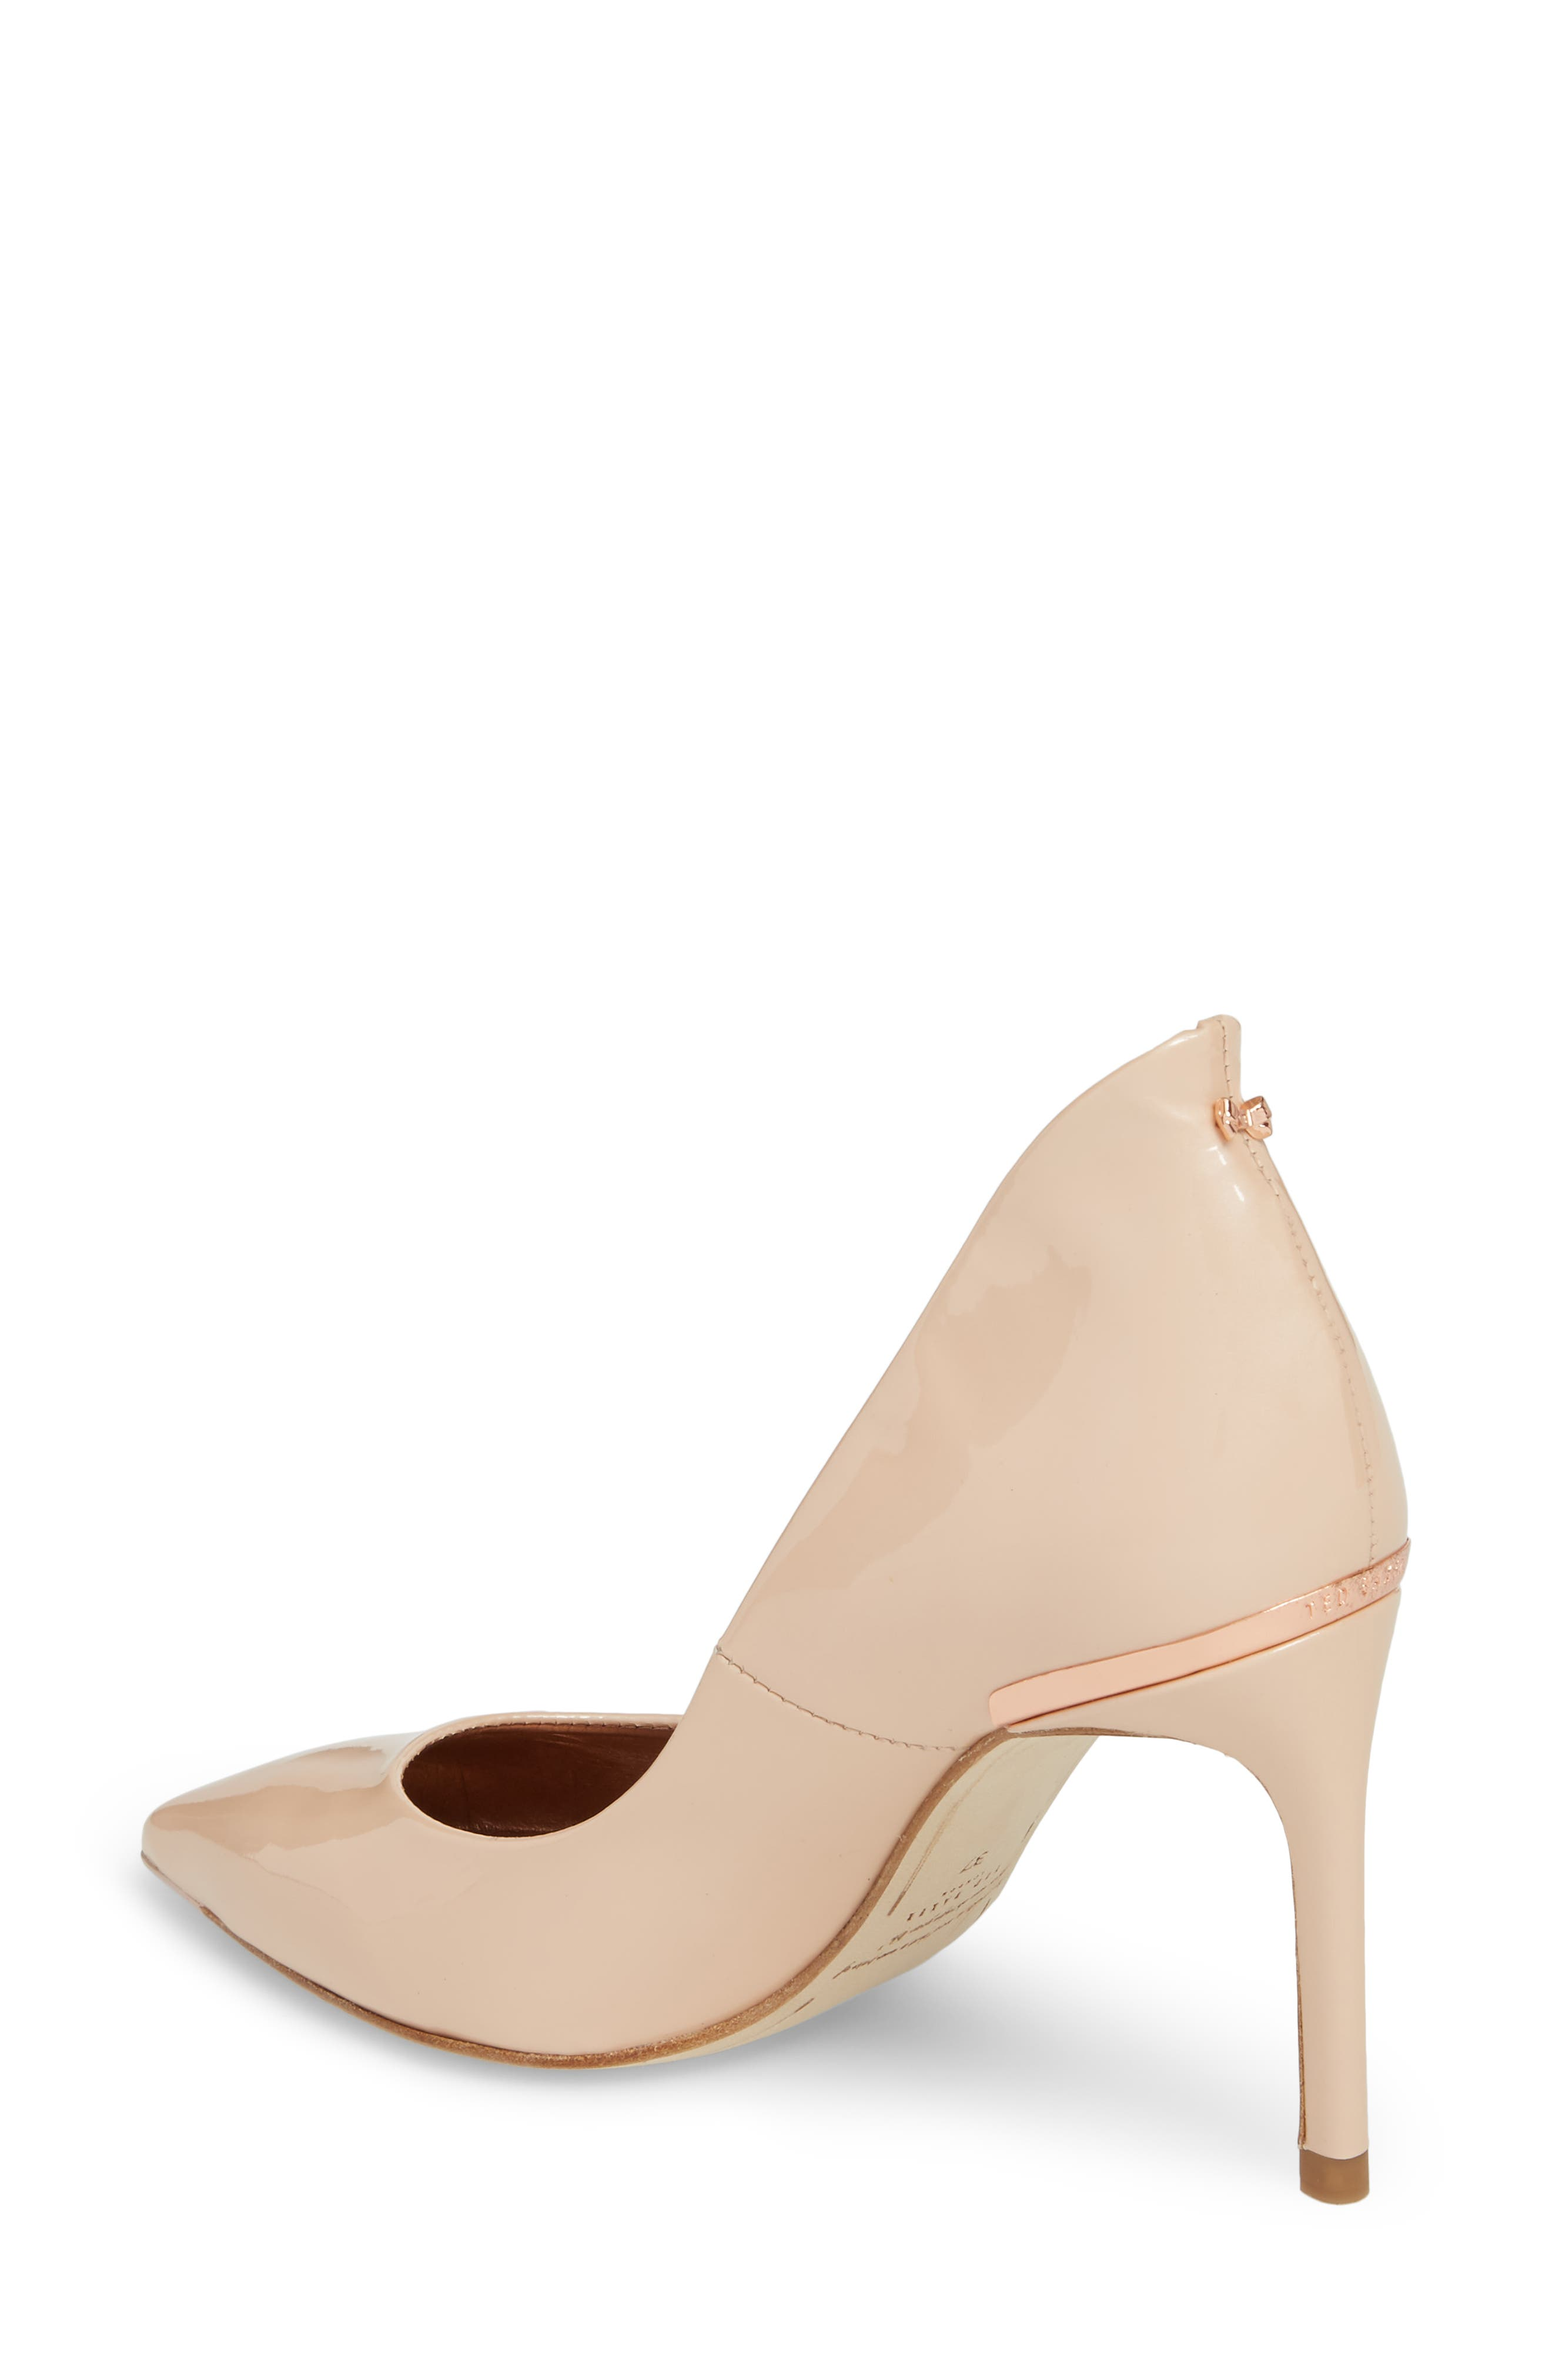 Savio Pump,                             Alternate thumbnail 2, color,                             NUDE PATENT LEATHER